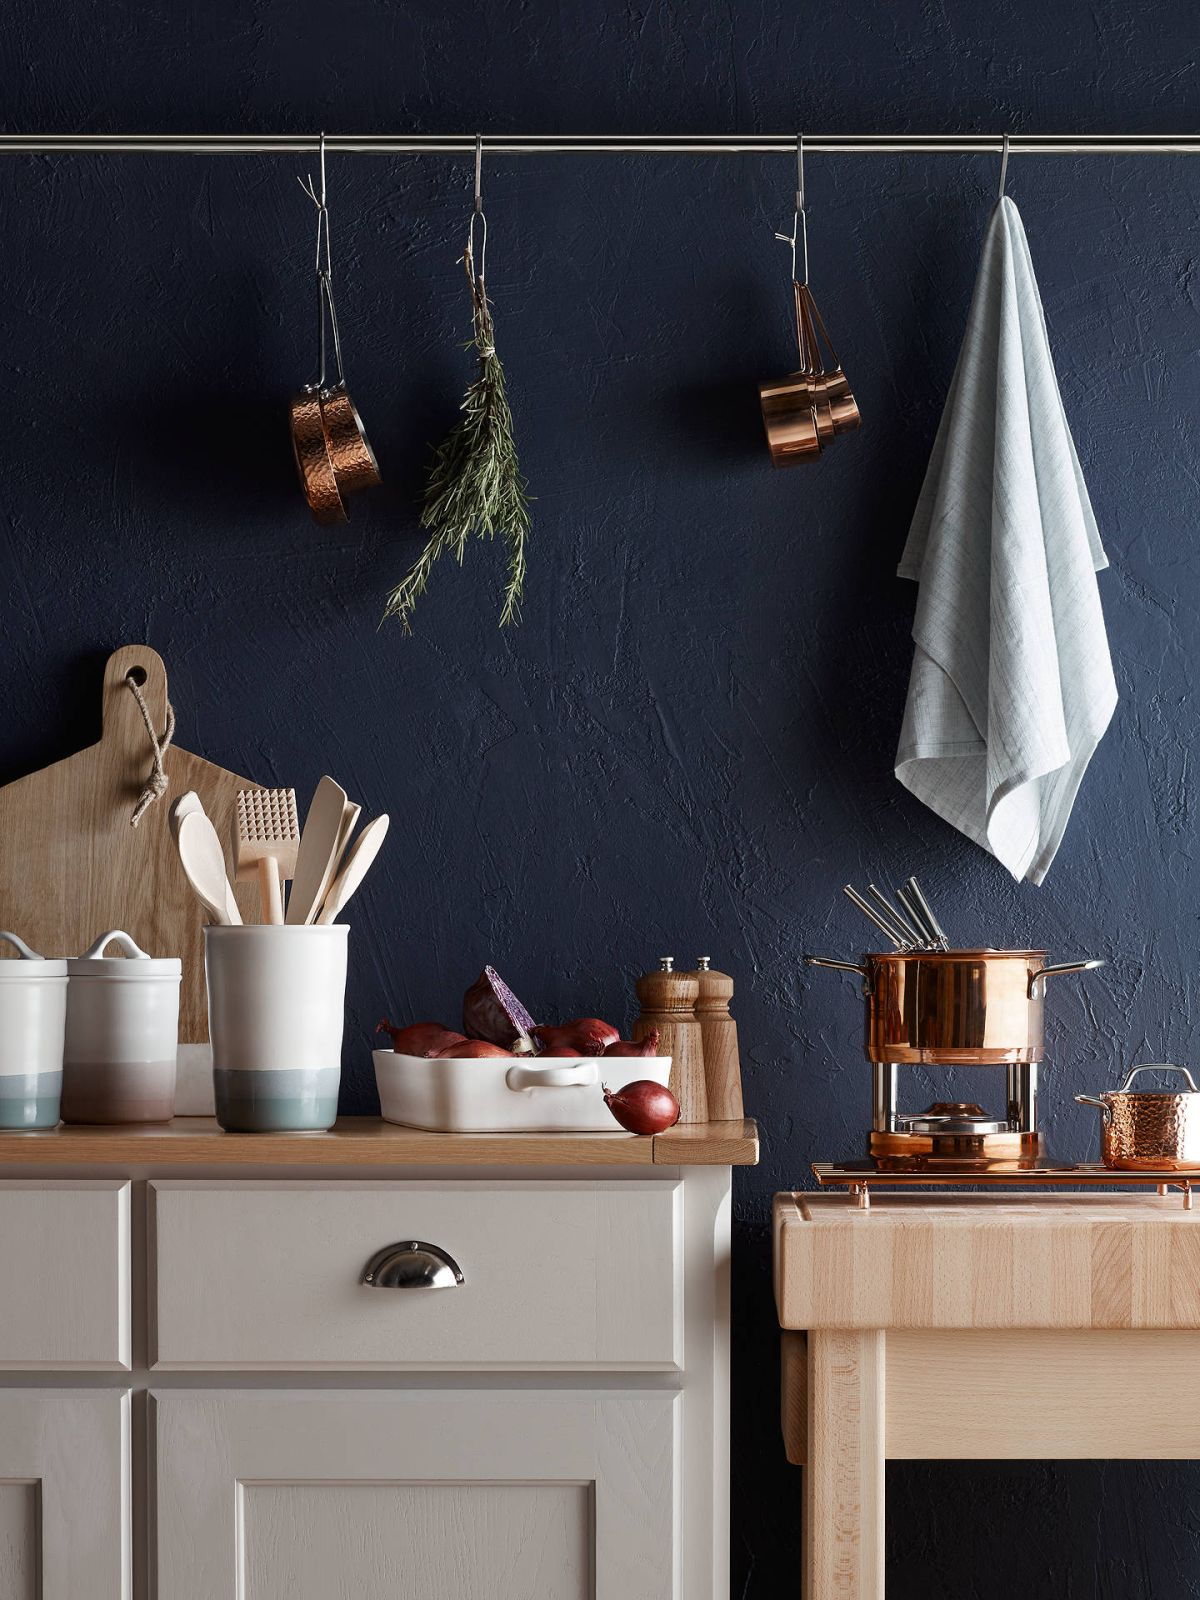 Looking for a quick way to make your kitchen more stylish? Rose gold accessories are the answer